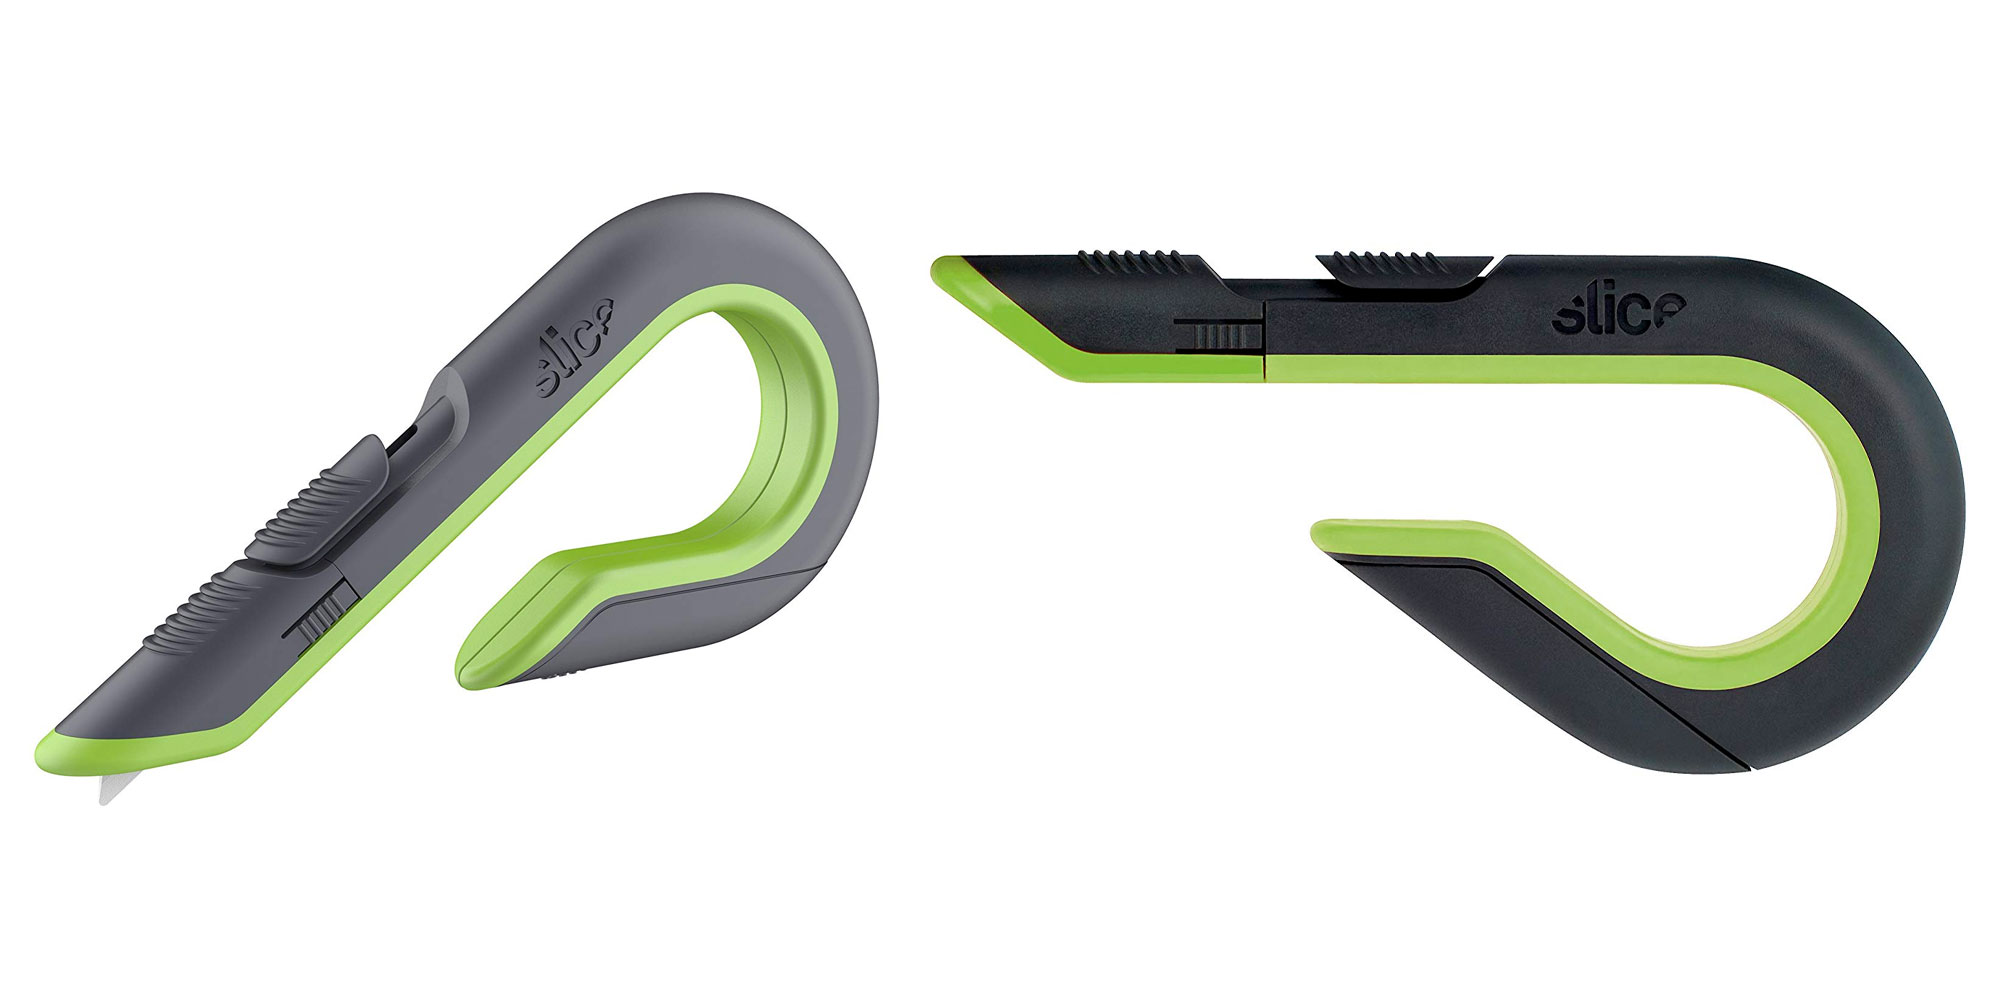 The Slice auto retractable box cutter opens packages with ease for $12.50 shipped